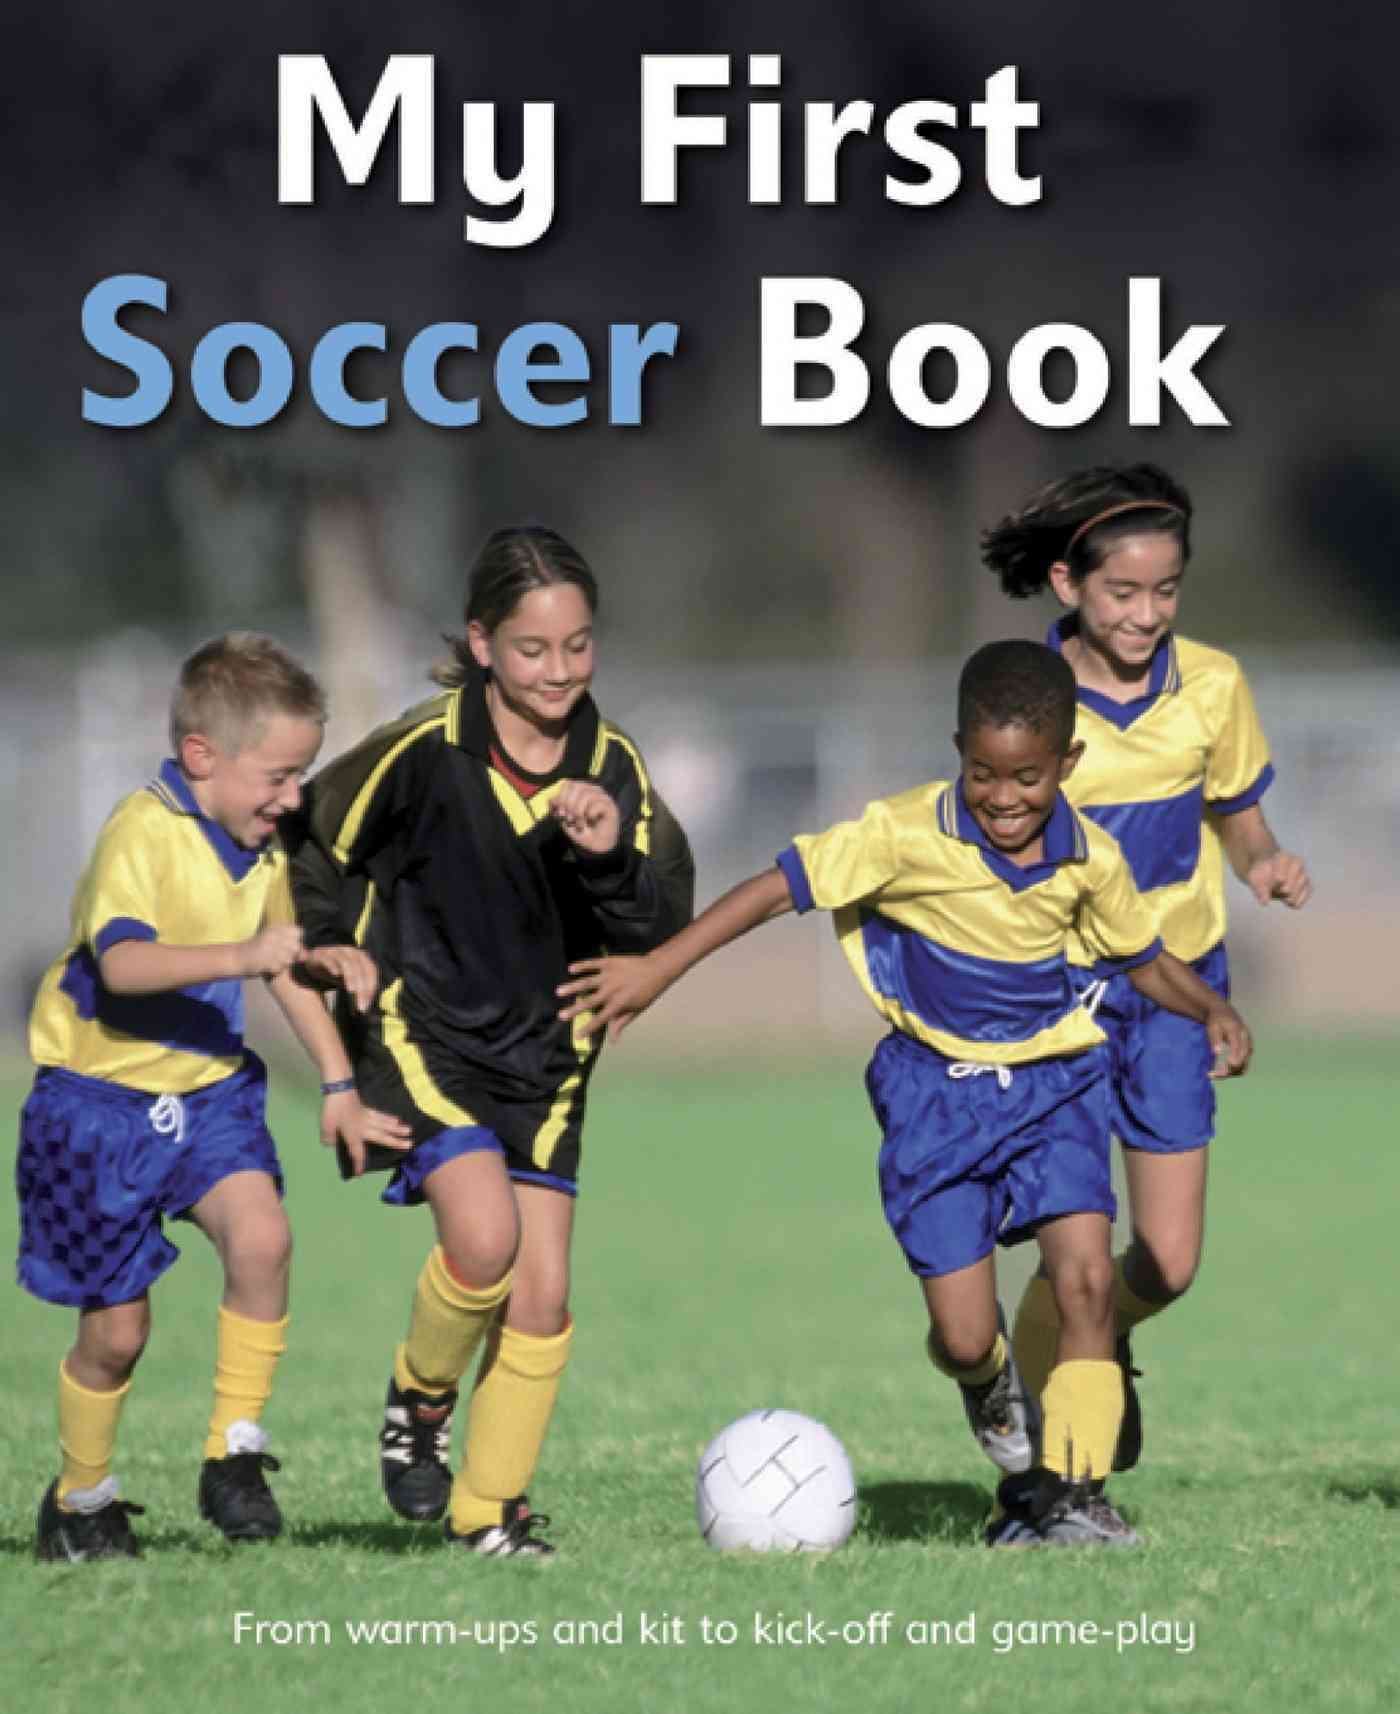 My First Soccer Book By Gifford, Clive